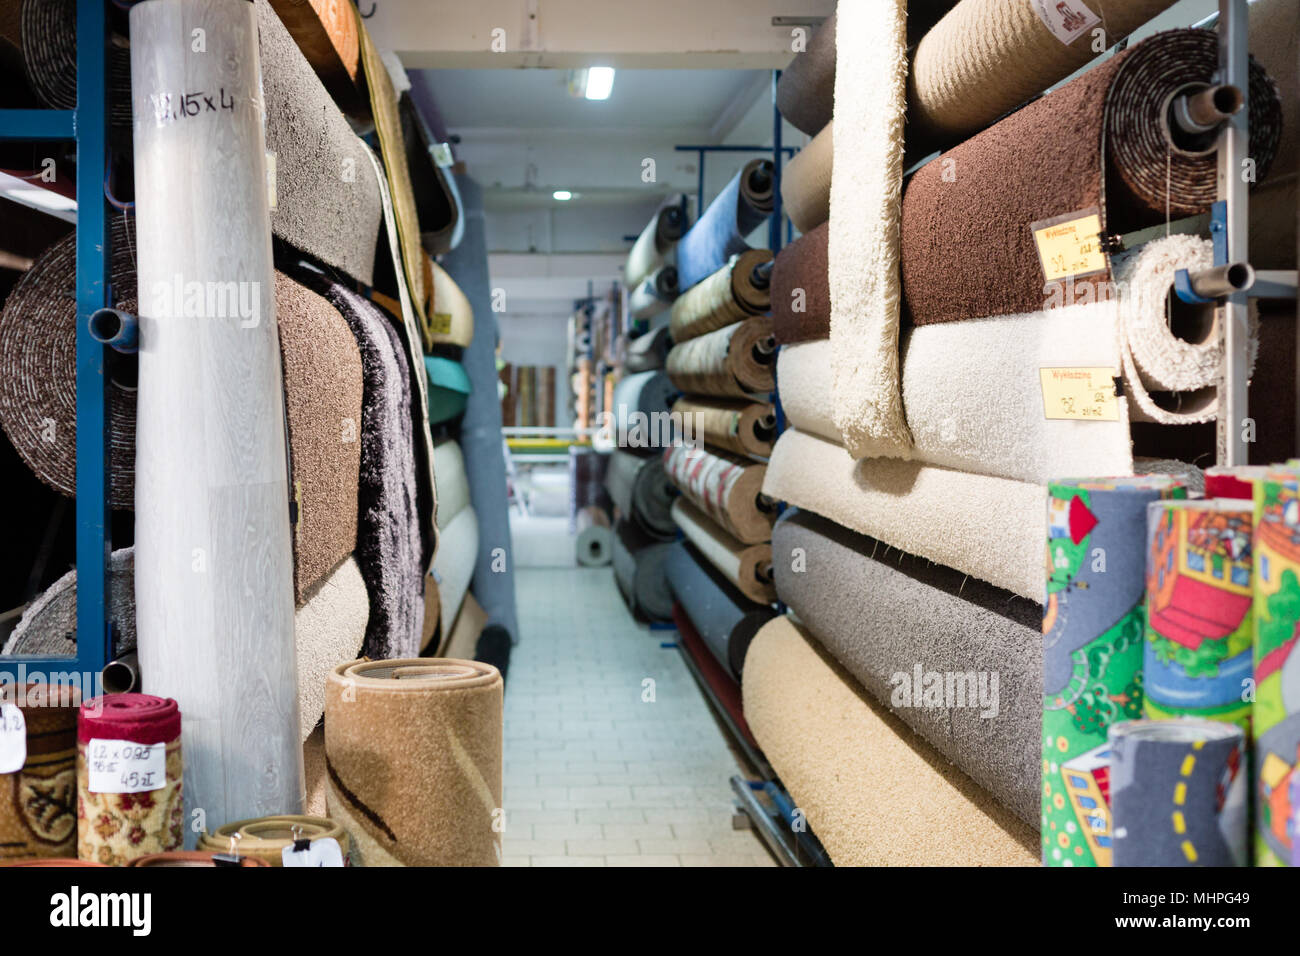 Carpet rolls on a rack in a warehouse - Stock Image